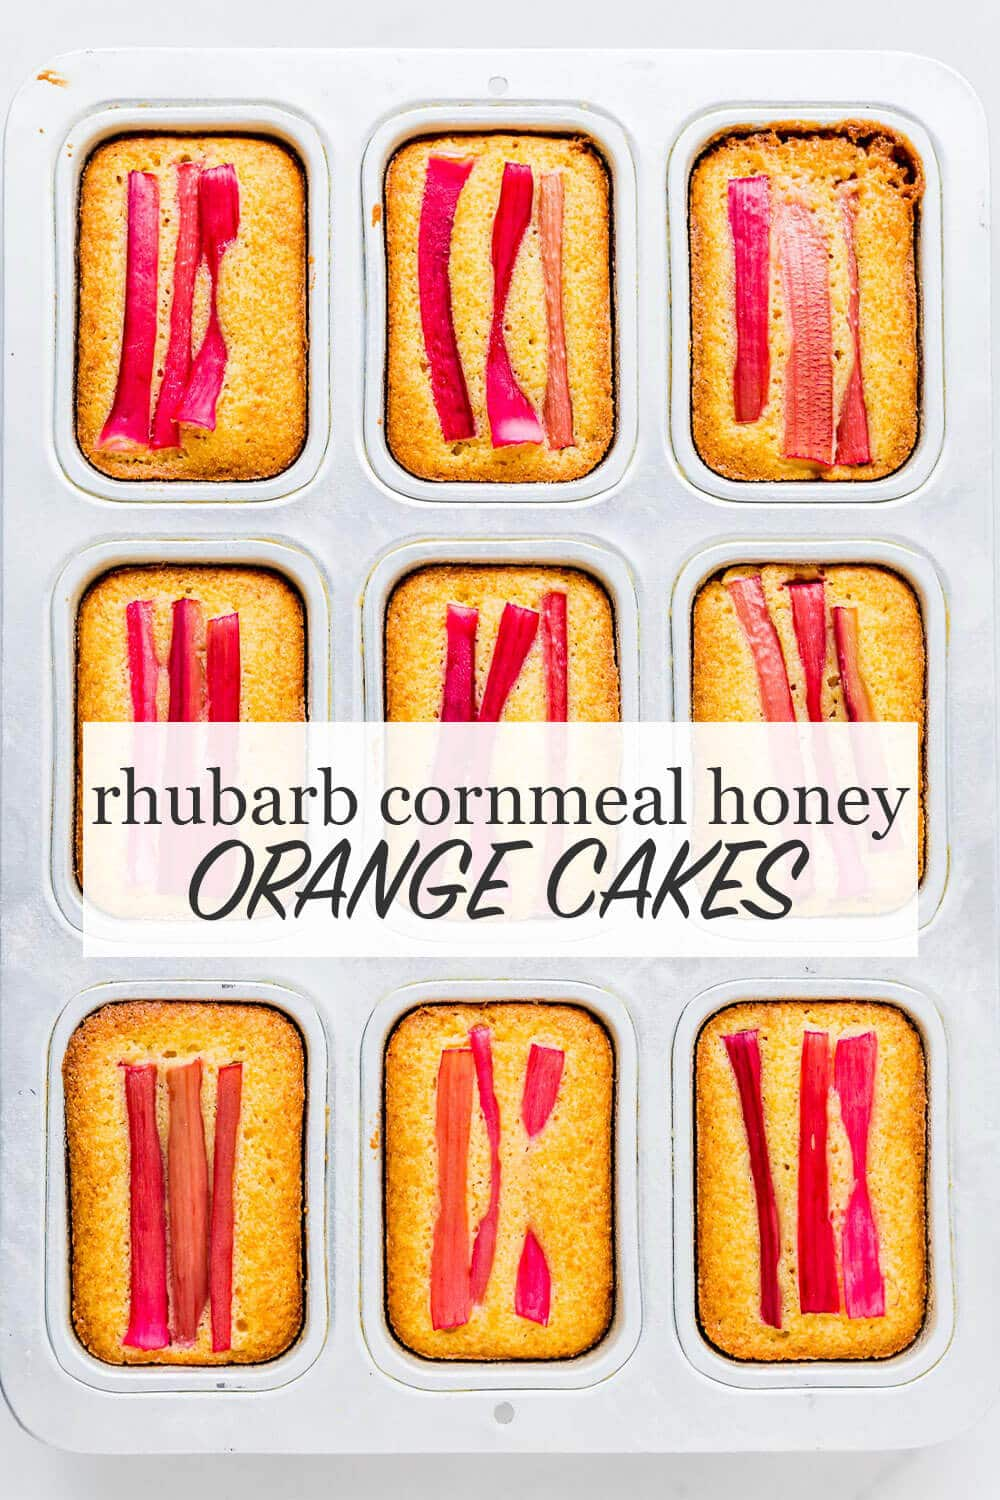 Mini orange cakes baked in a loaf cake pan topped with stalks of pink rhubarb